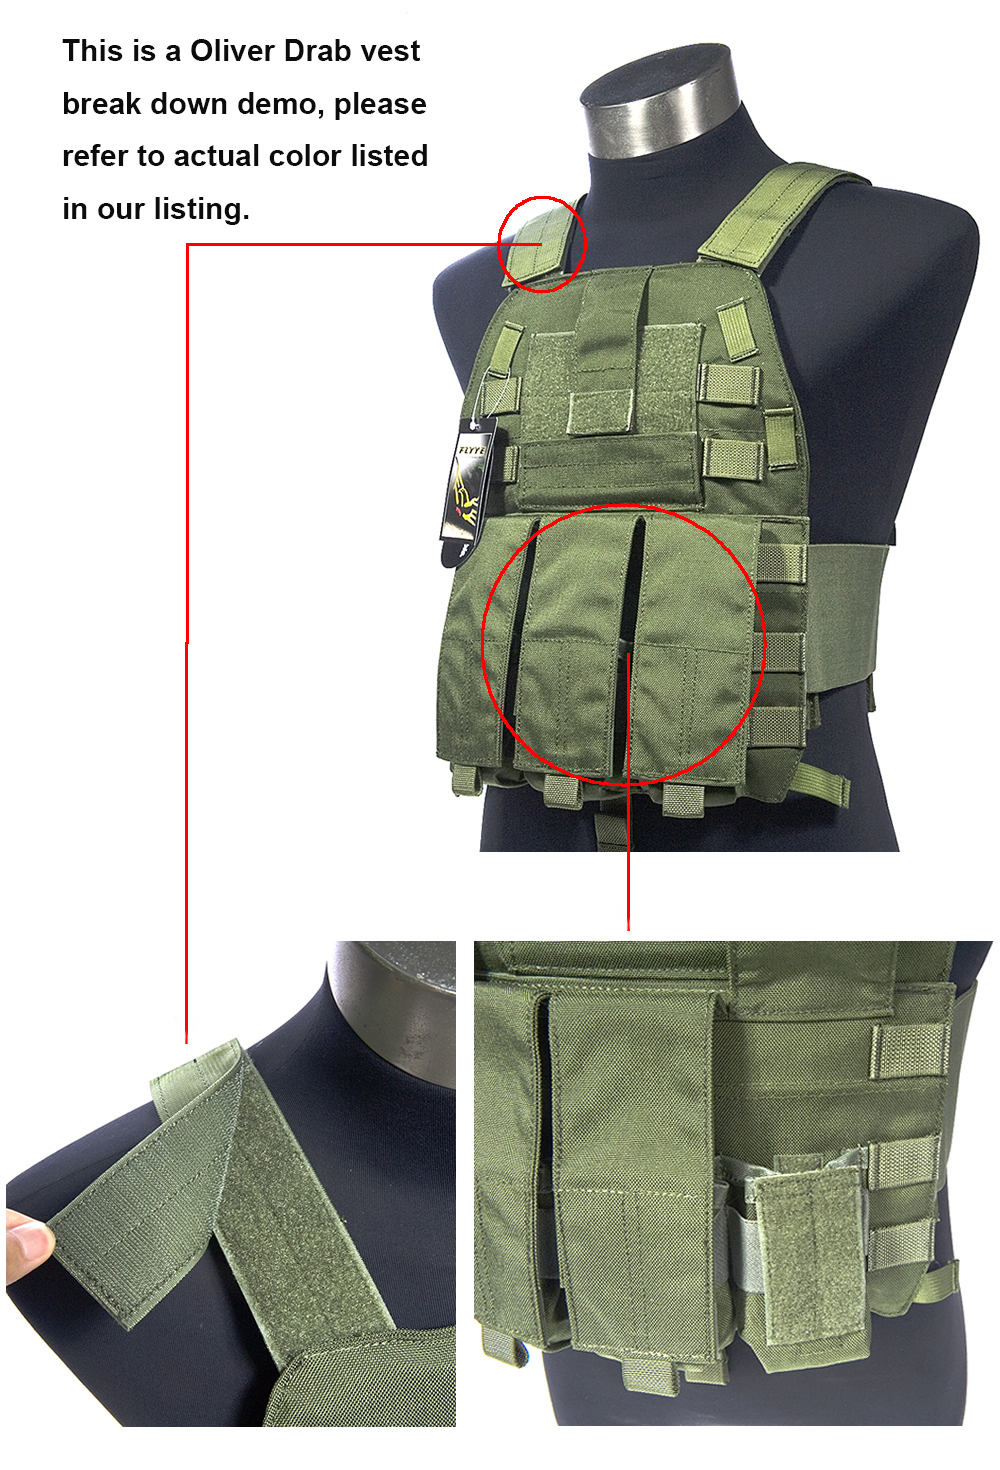 MILITECH Mil Spec Military LT6094K Oliver Drab OD Plate Carrier Combat Molle Tactical Vest Army Military Combat Vests Carrier d38999 24fb5ad [ circular mil spec connectors dts 5c 5 20 pi] mr li